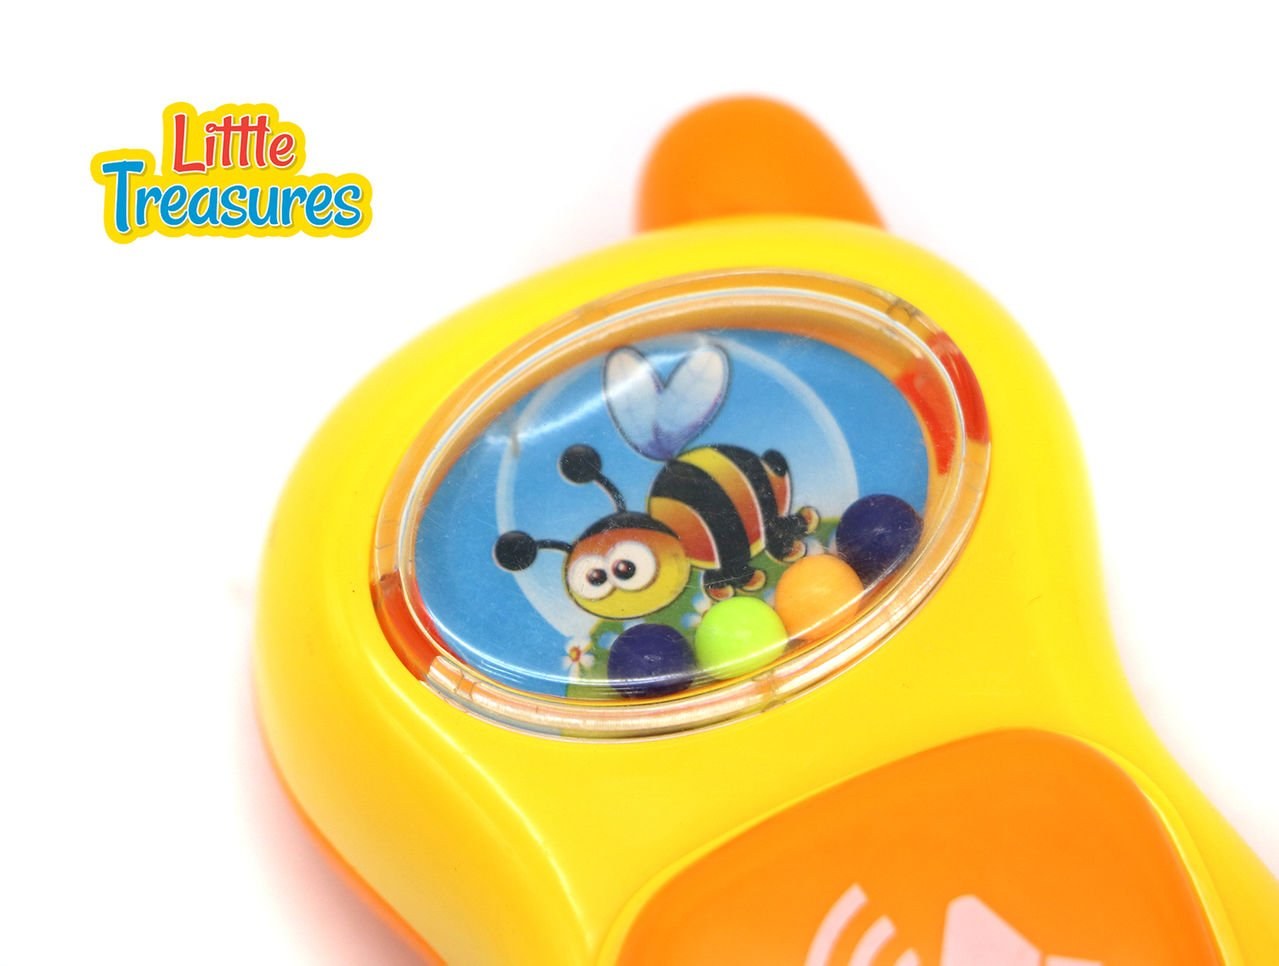 Little Treasures Creative Joyous Bee Rattle Toy with Push Button Animal Sounds